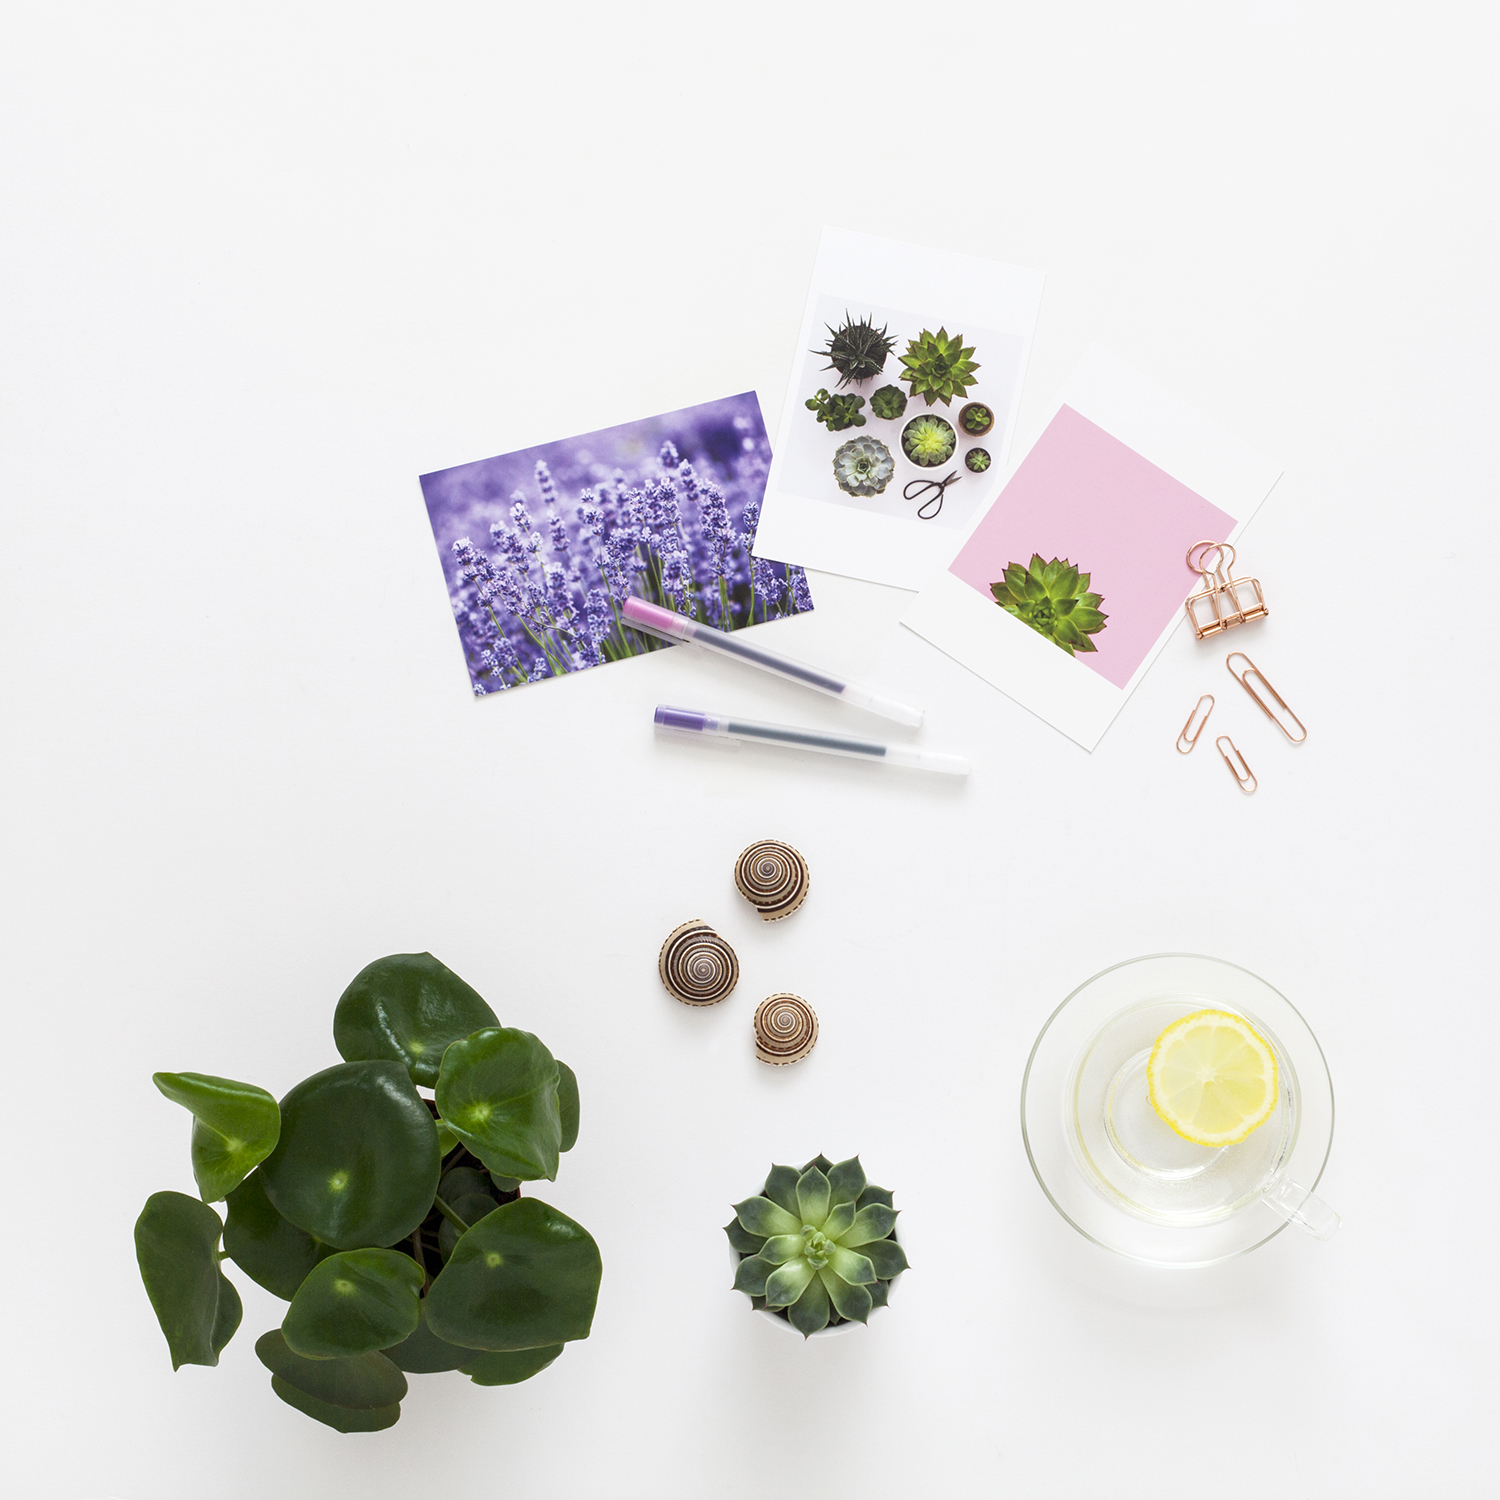 12 Insightful Questions to Help You Plan Your Year | Photo of some postcards and a plant | natashadenness.co.uk